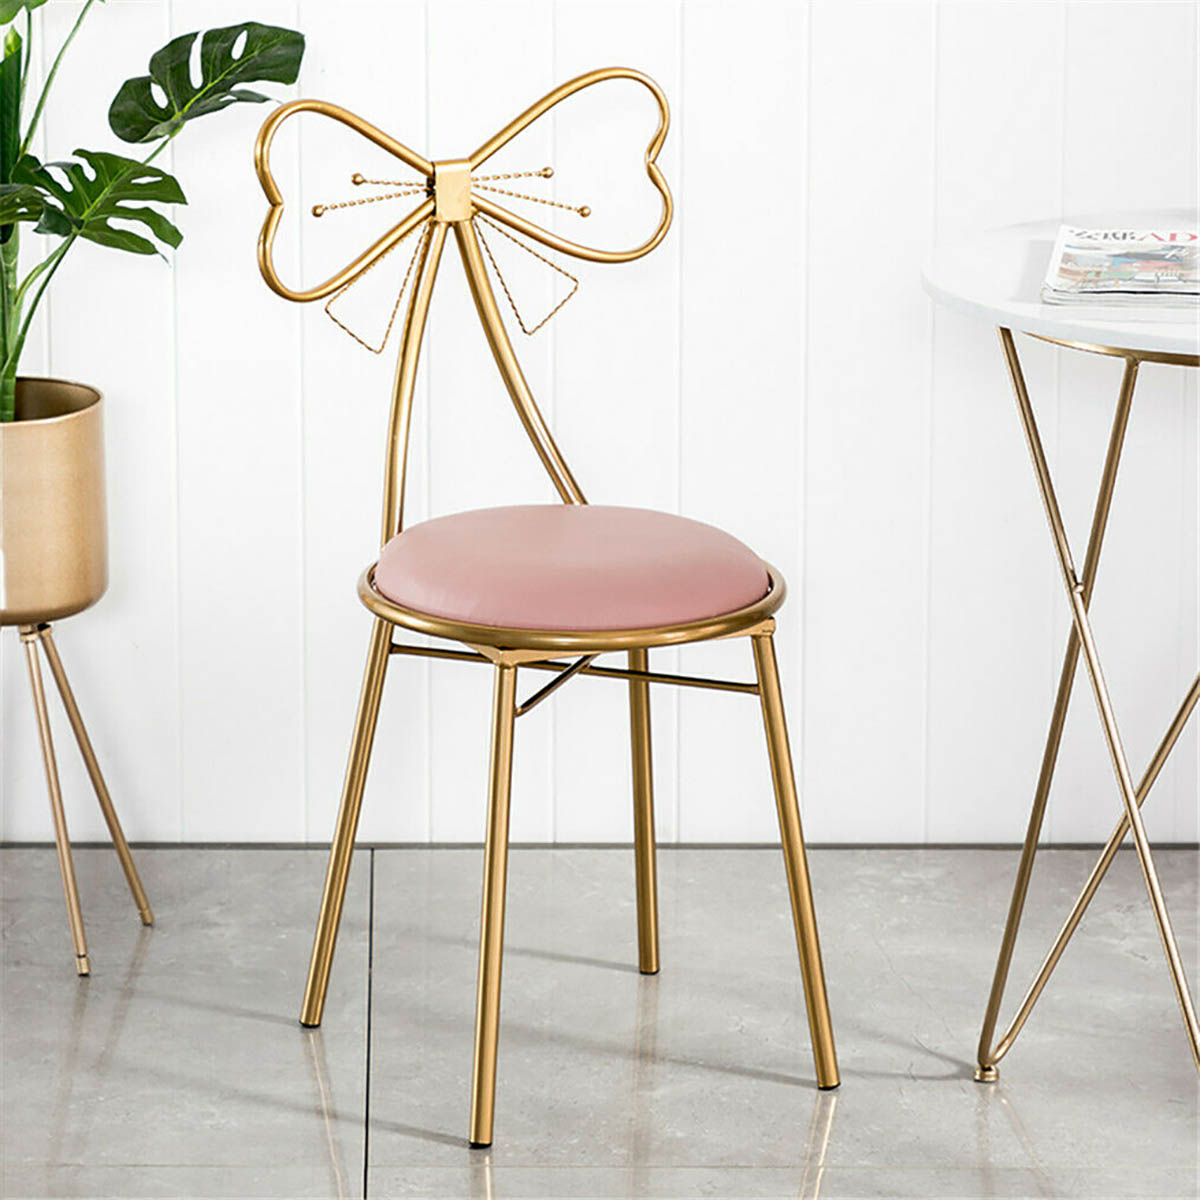 pair makeup vanity chairs for girls cute butterfly dressing stool chair for bedroom living room metal bench legs gold chair with fluffy velvet